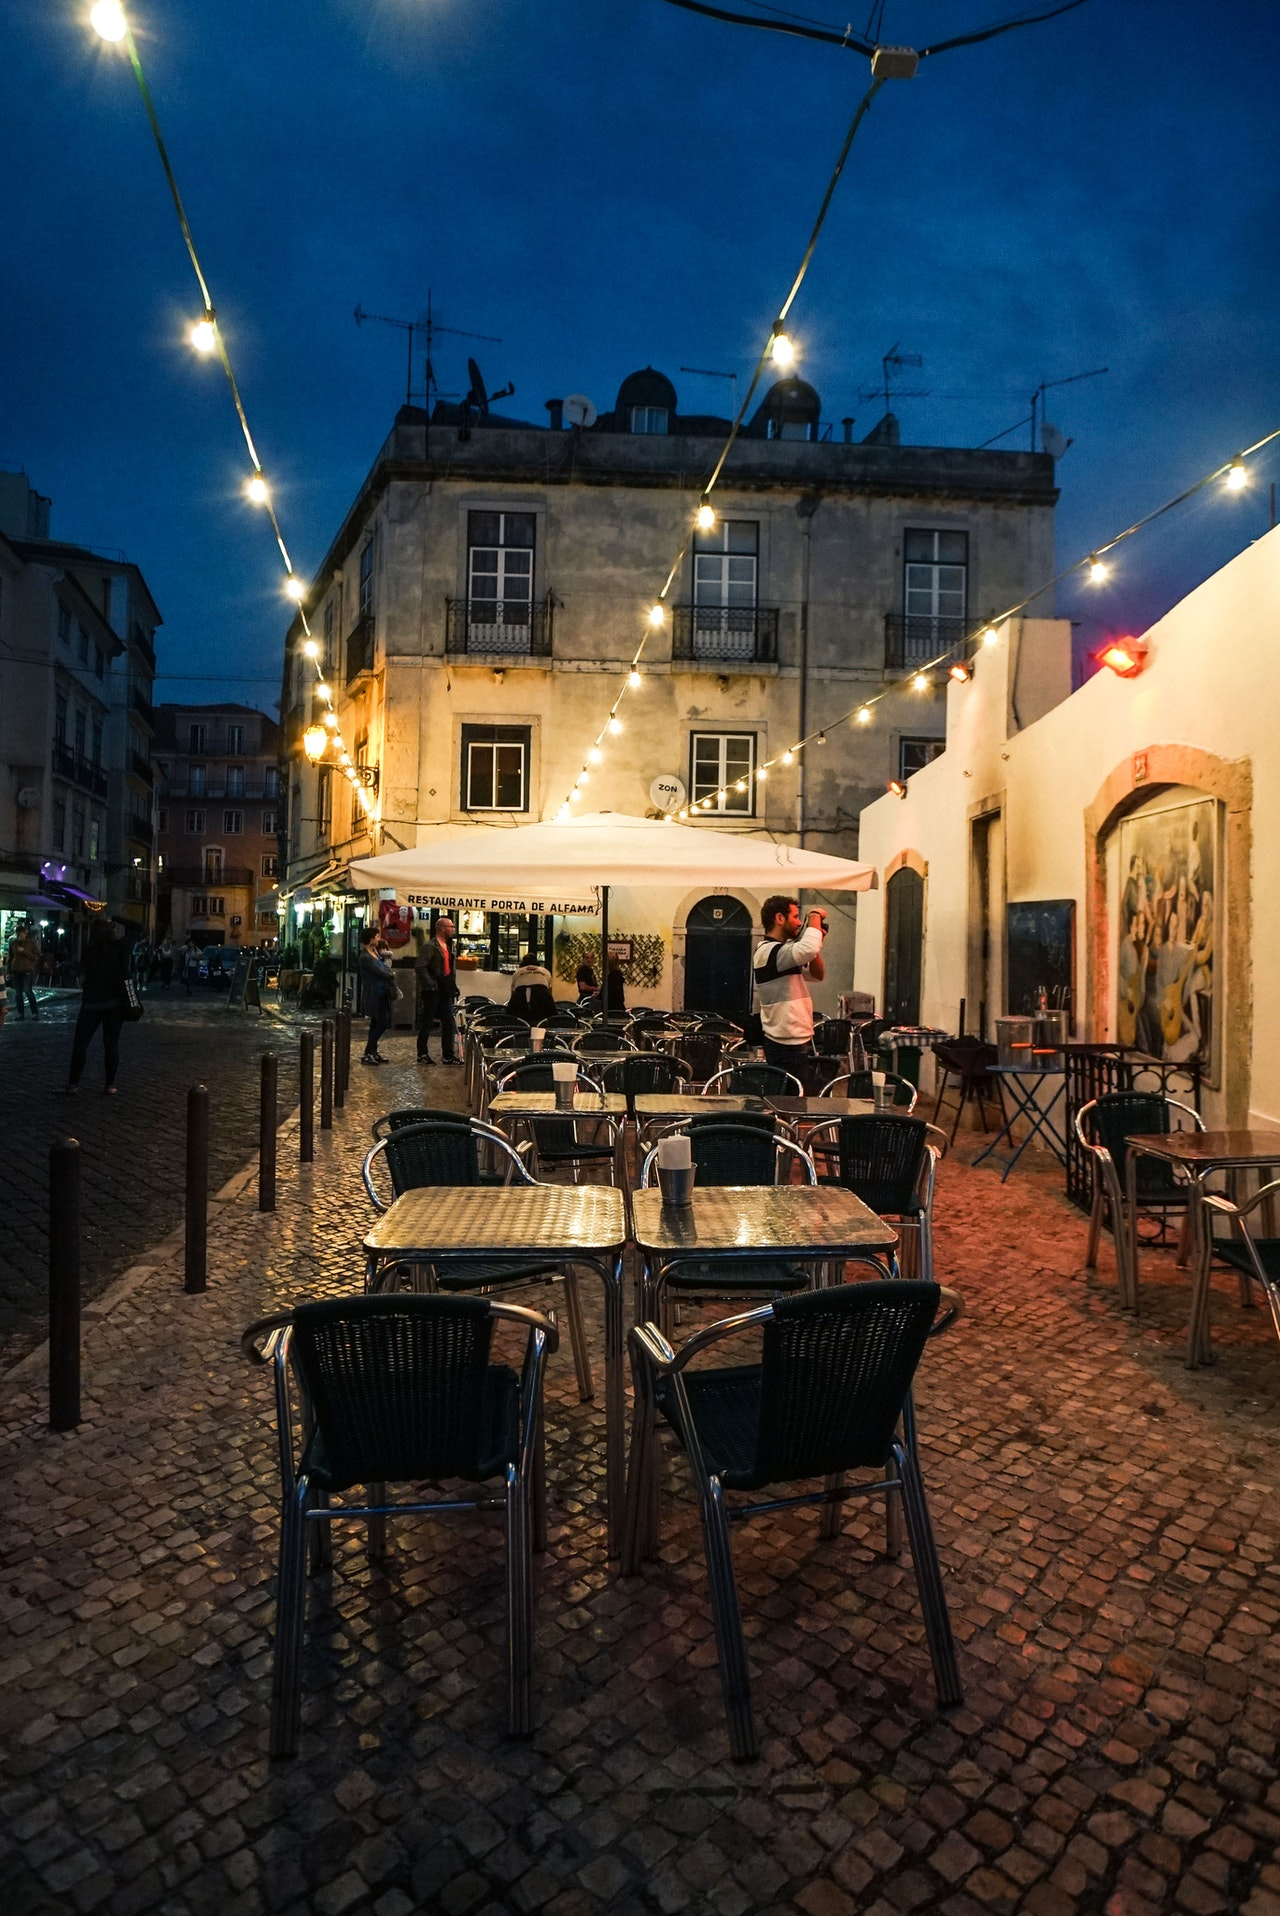 exterior of restaurant with chairs and people walking around